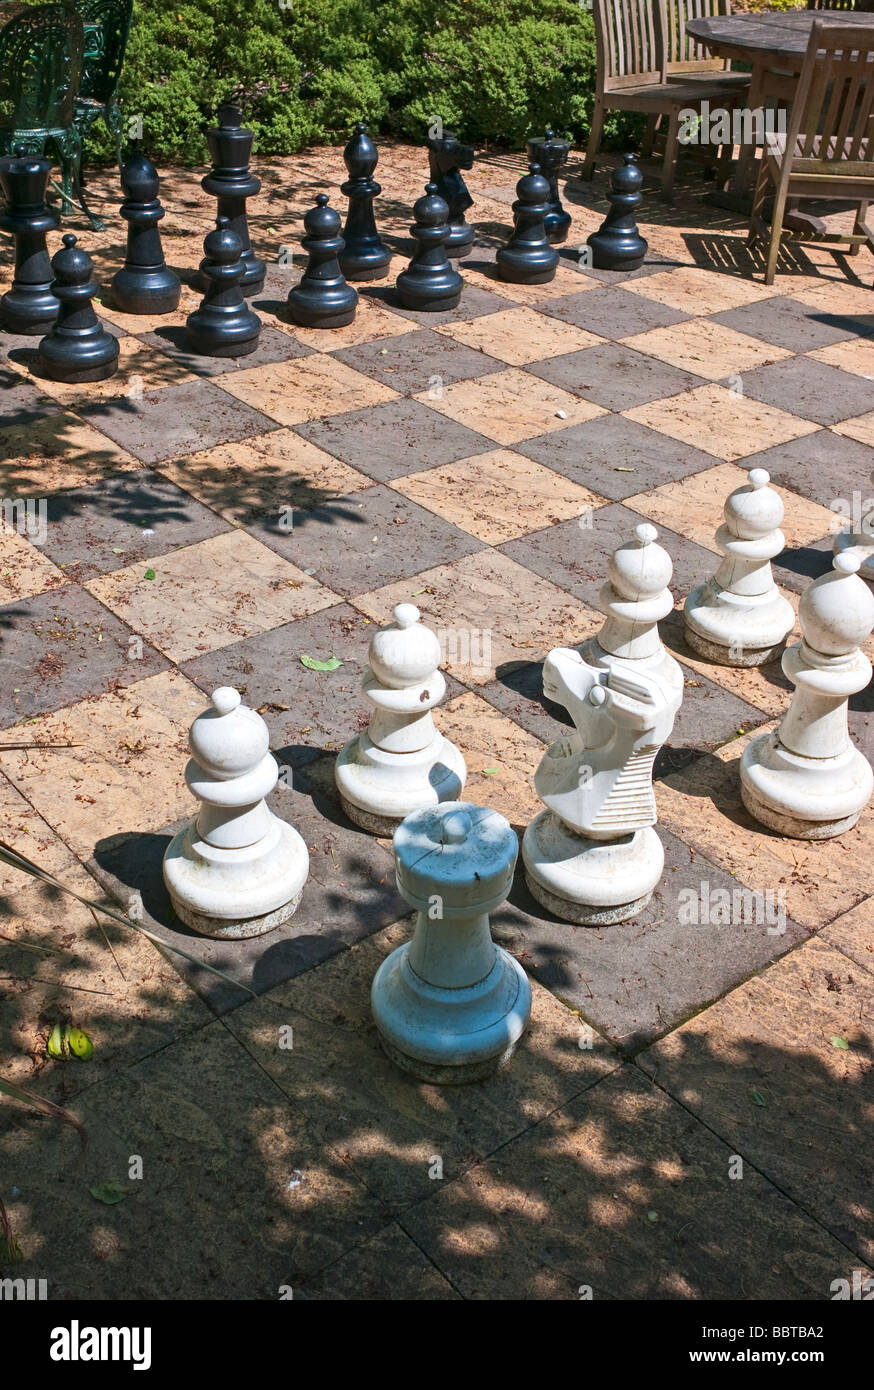 Chess pieces on an outdoor patio game - Stock Image